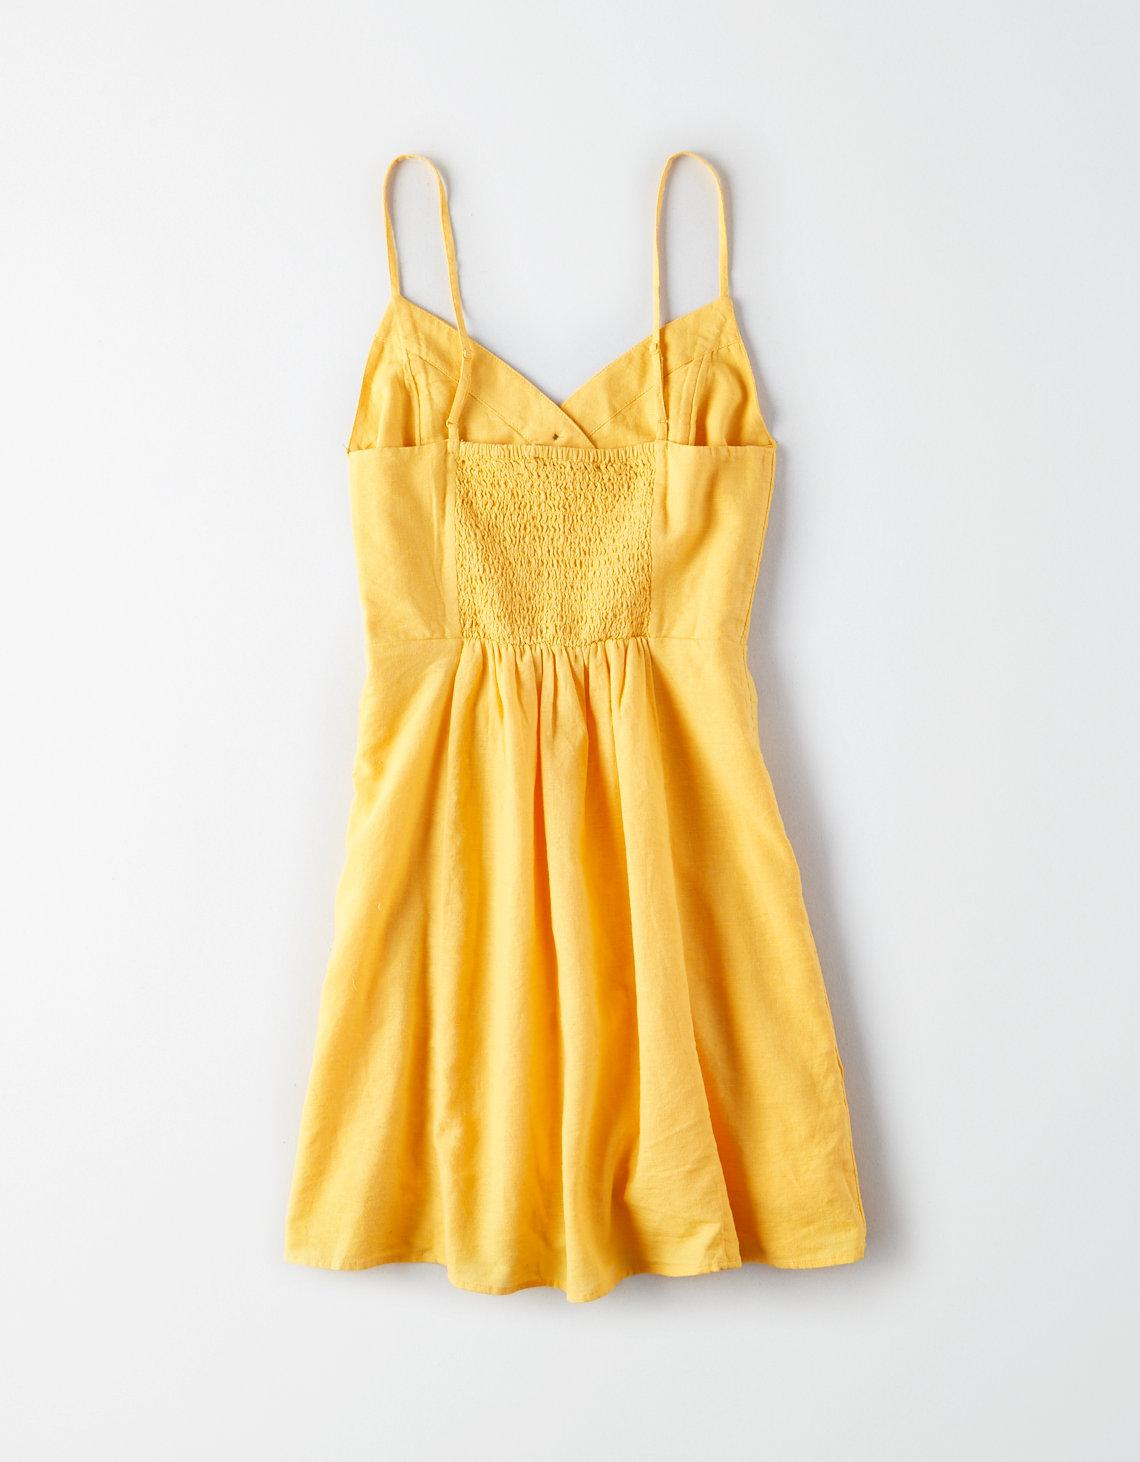 86276c6ced Lyst - American Eagle Ae Asymmetric Button Front Dress in Yellow